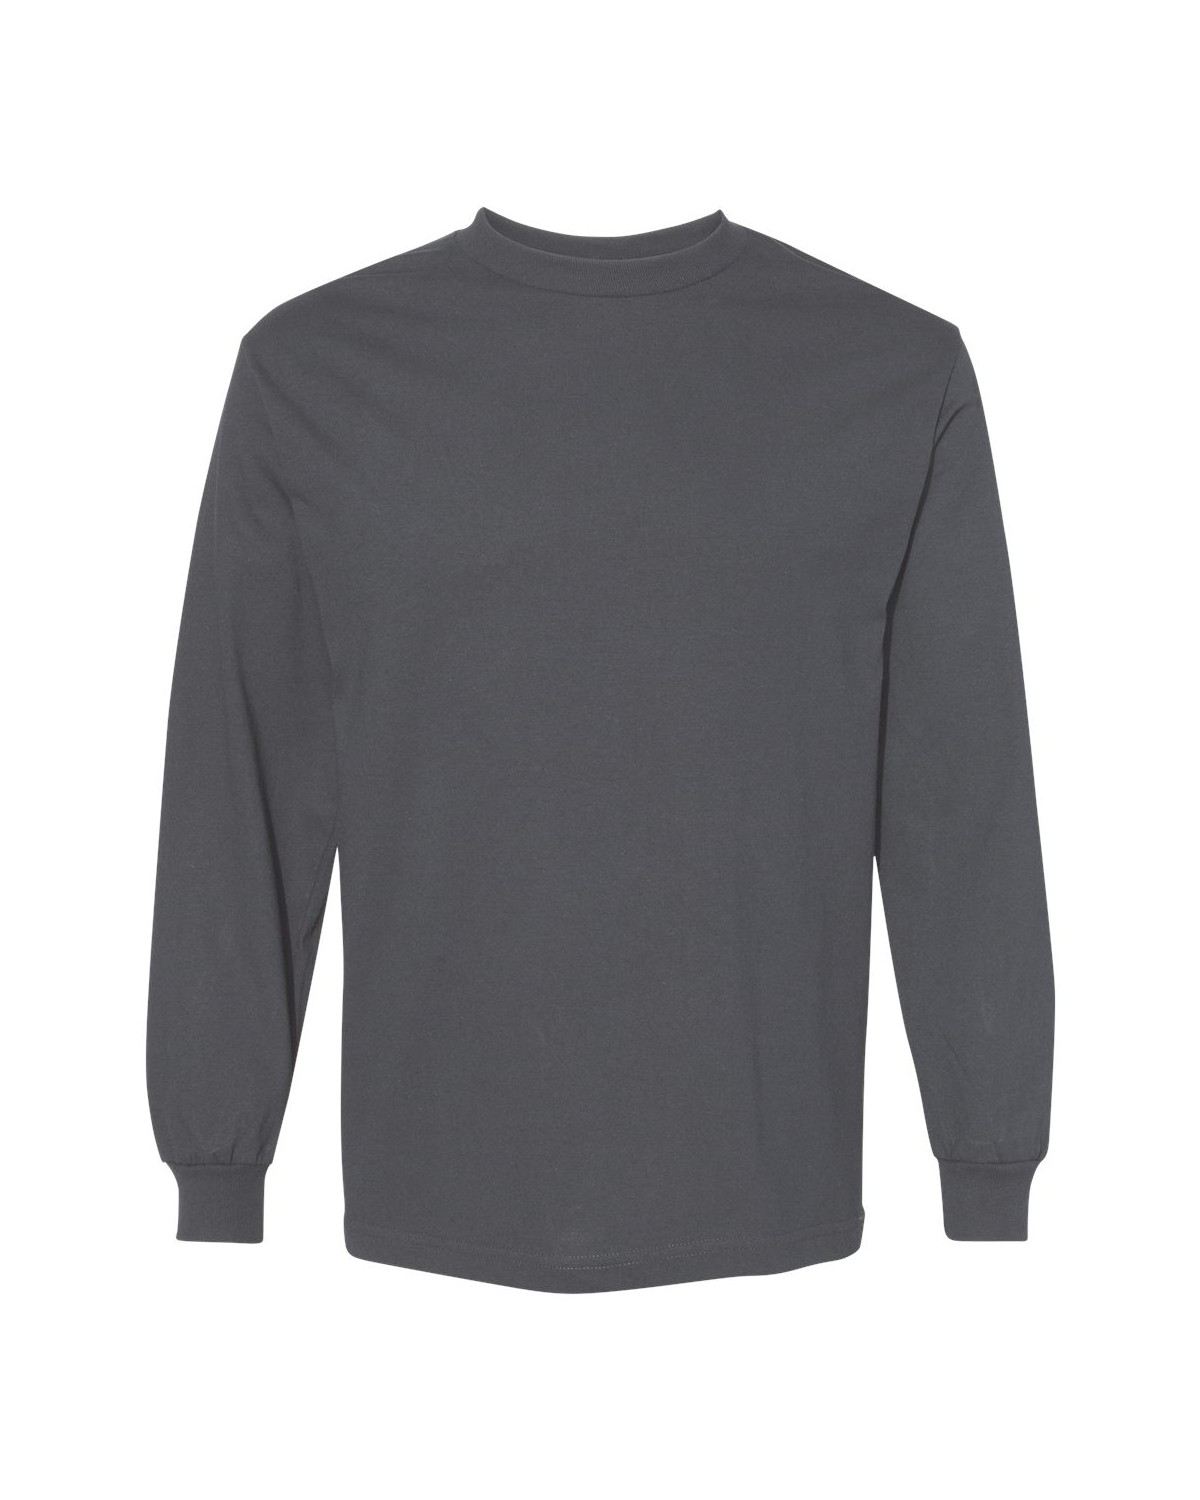 1304 Alstyle CHARCOAL